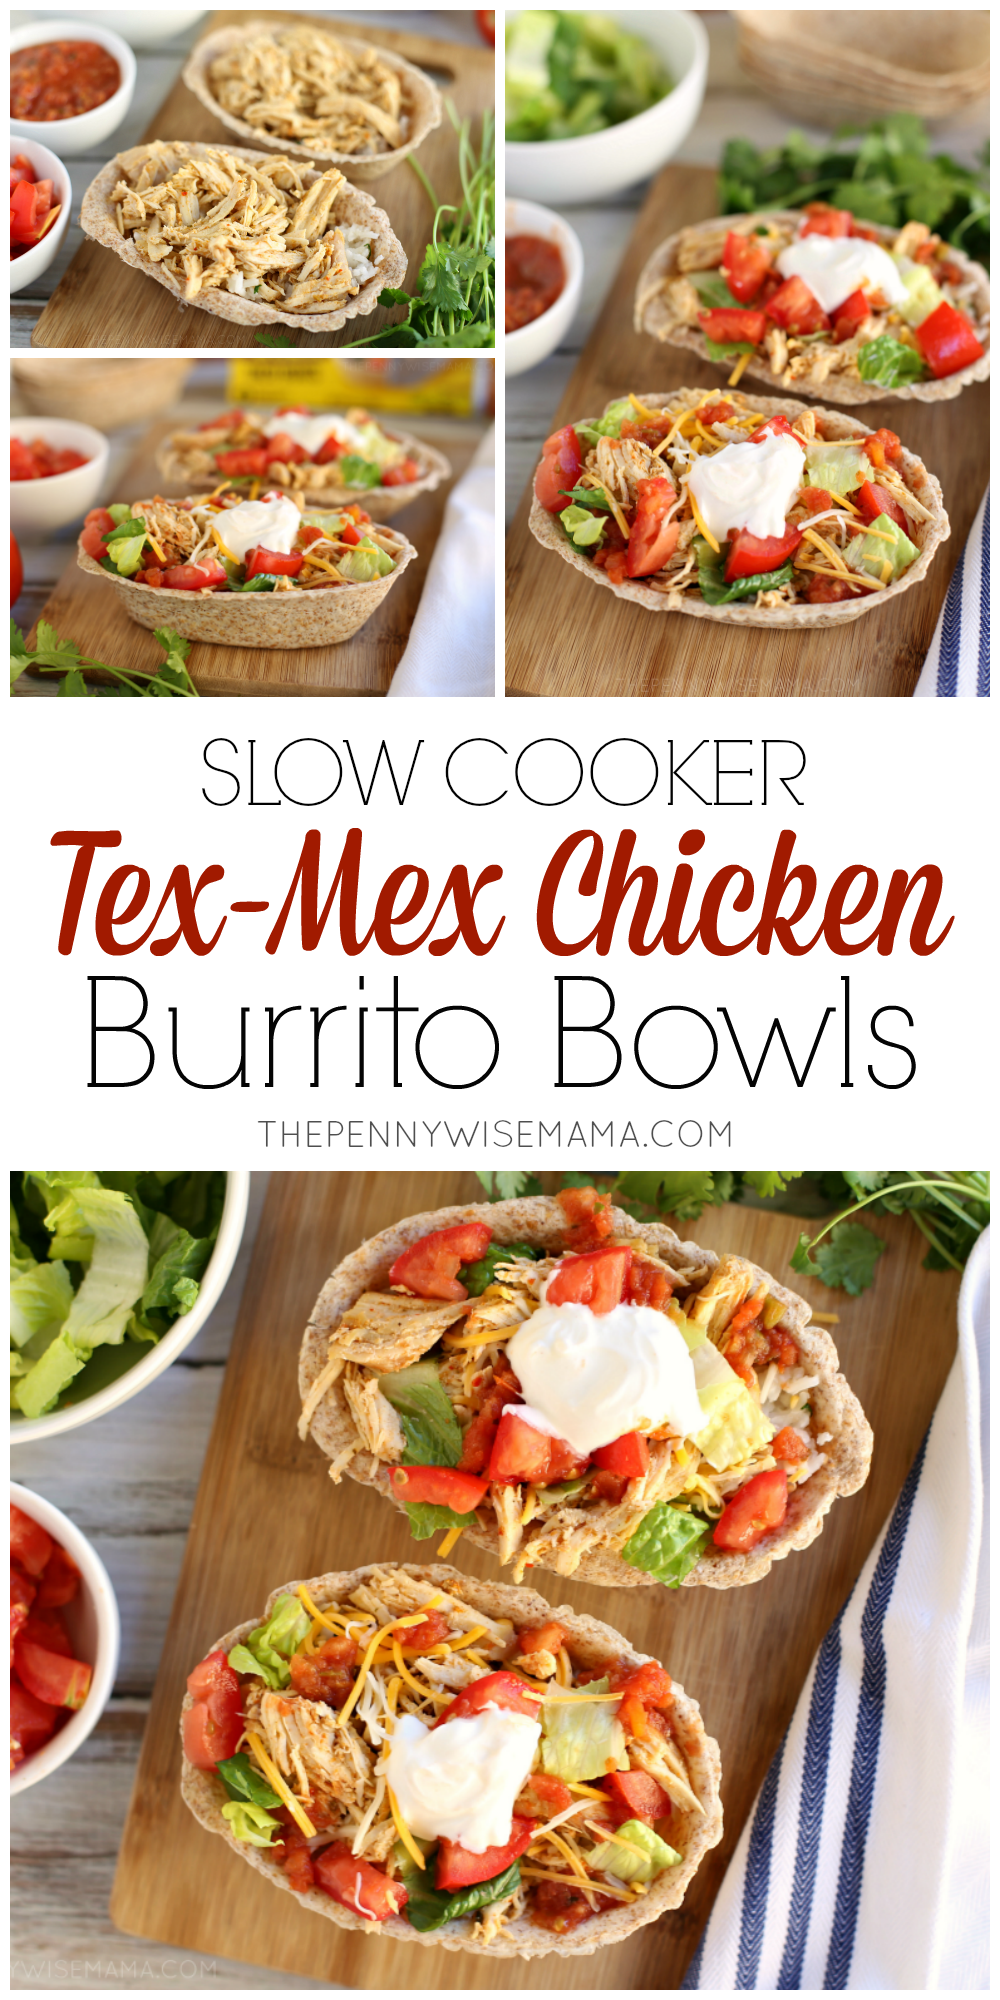 Slow Cooker Tex-Mex Chicken Burrito Bowls